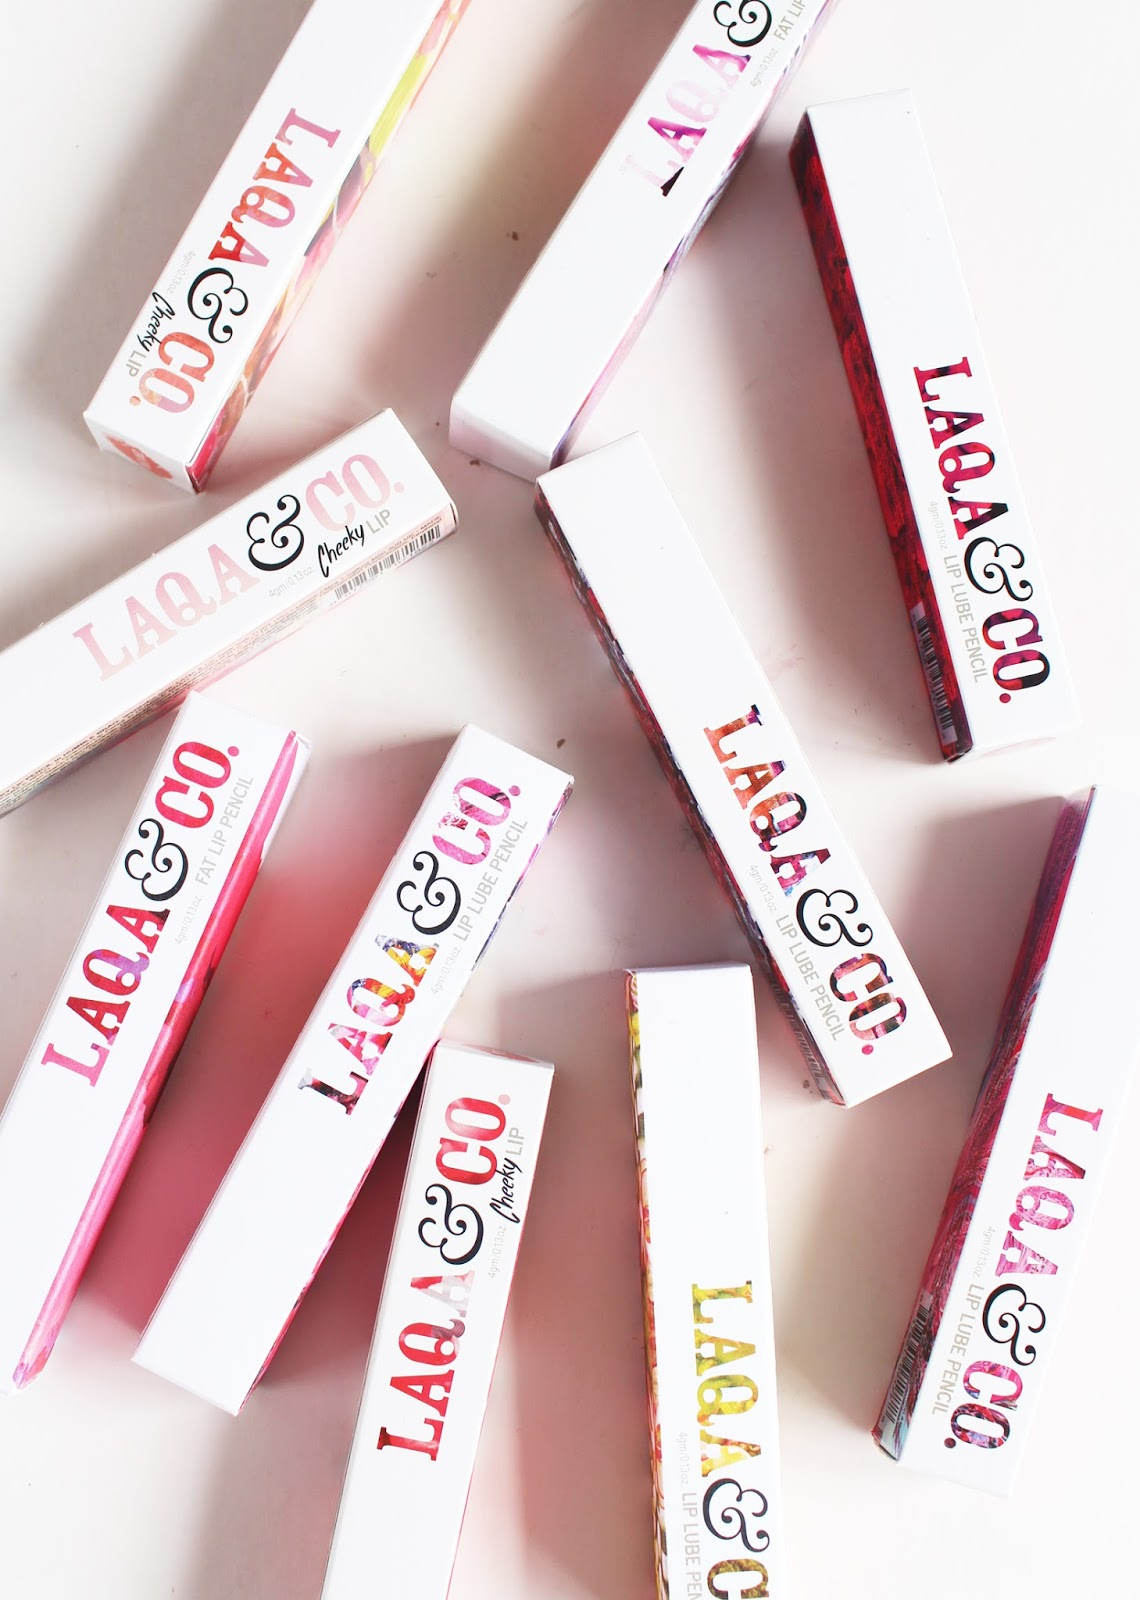 LAQA&CO. | Fat Lip Pencil, Cheeky Lip + Lip Lubes - Review + Swatches - CassandraMyee